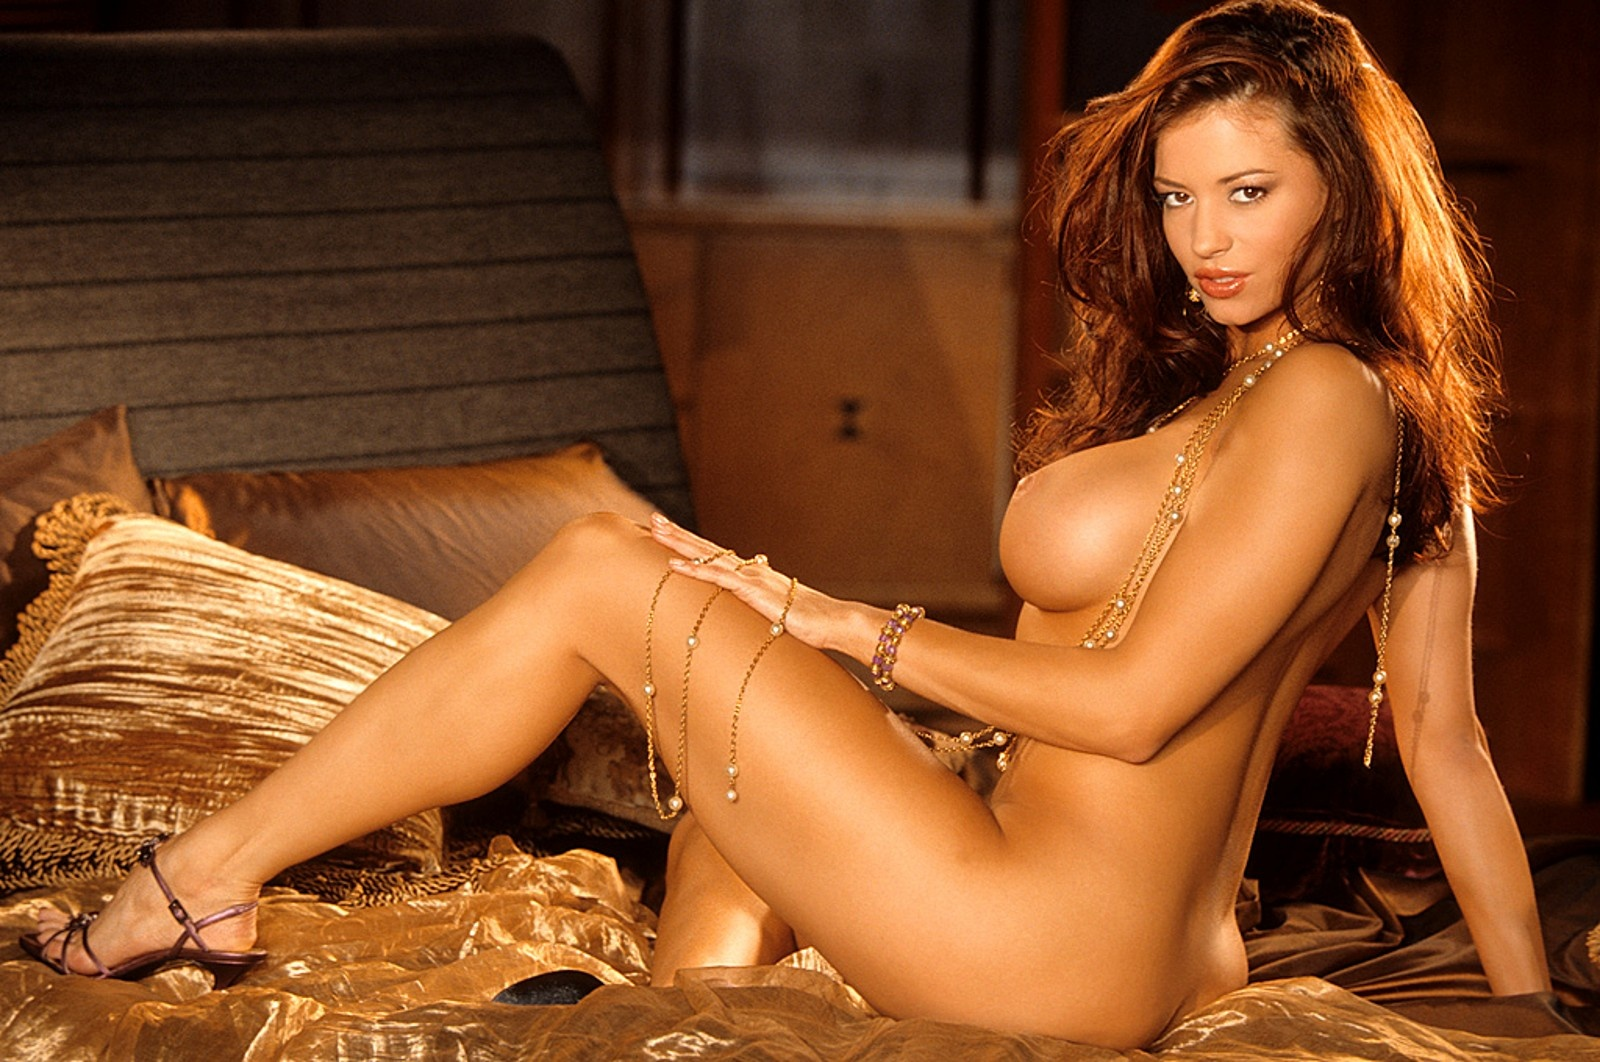 Wallpaper Candice Michelle, Brunette, Boobs, Nude, Naked -6578